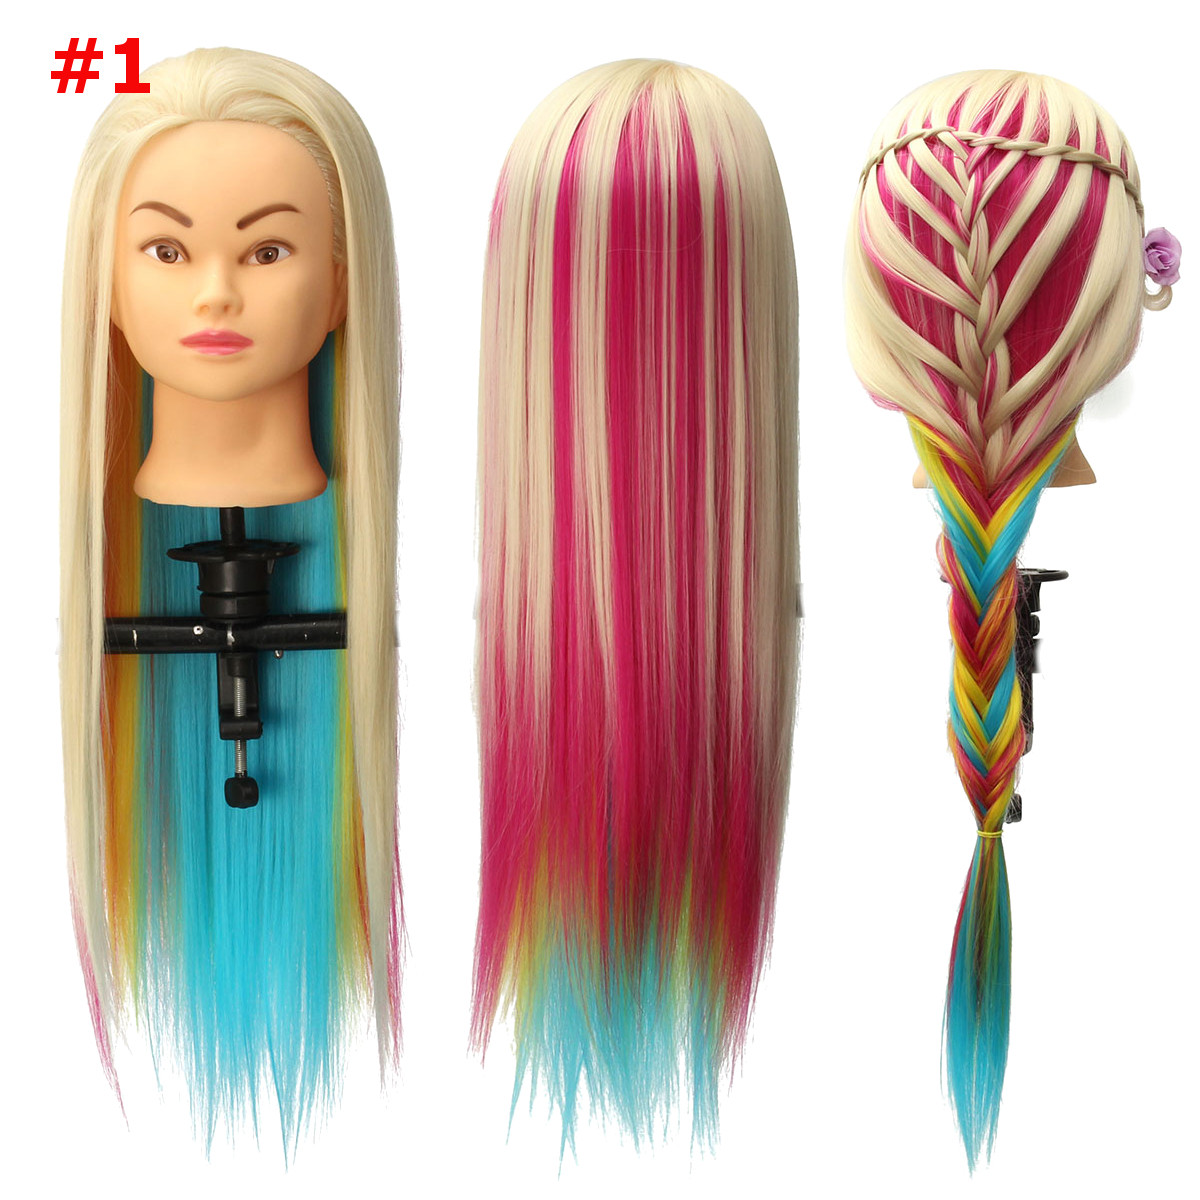 8 Colors Salon Hairdressing Braiding Practice Mannequin